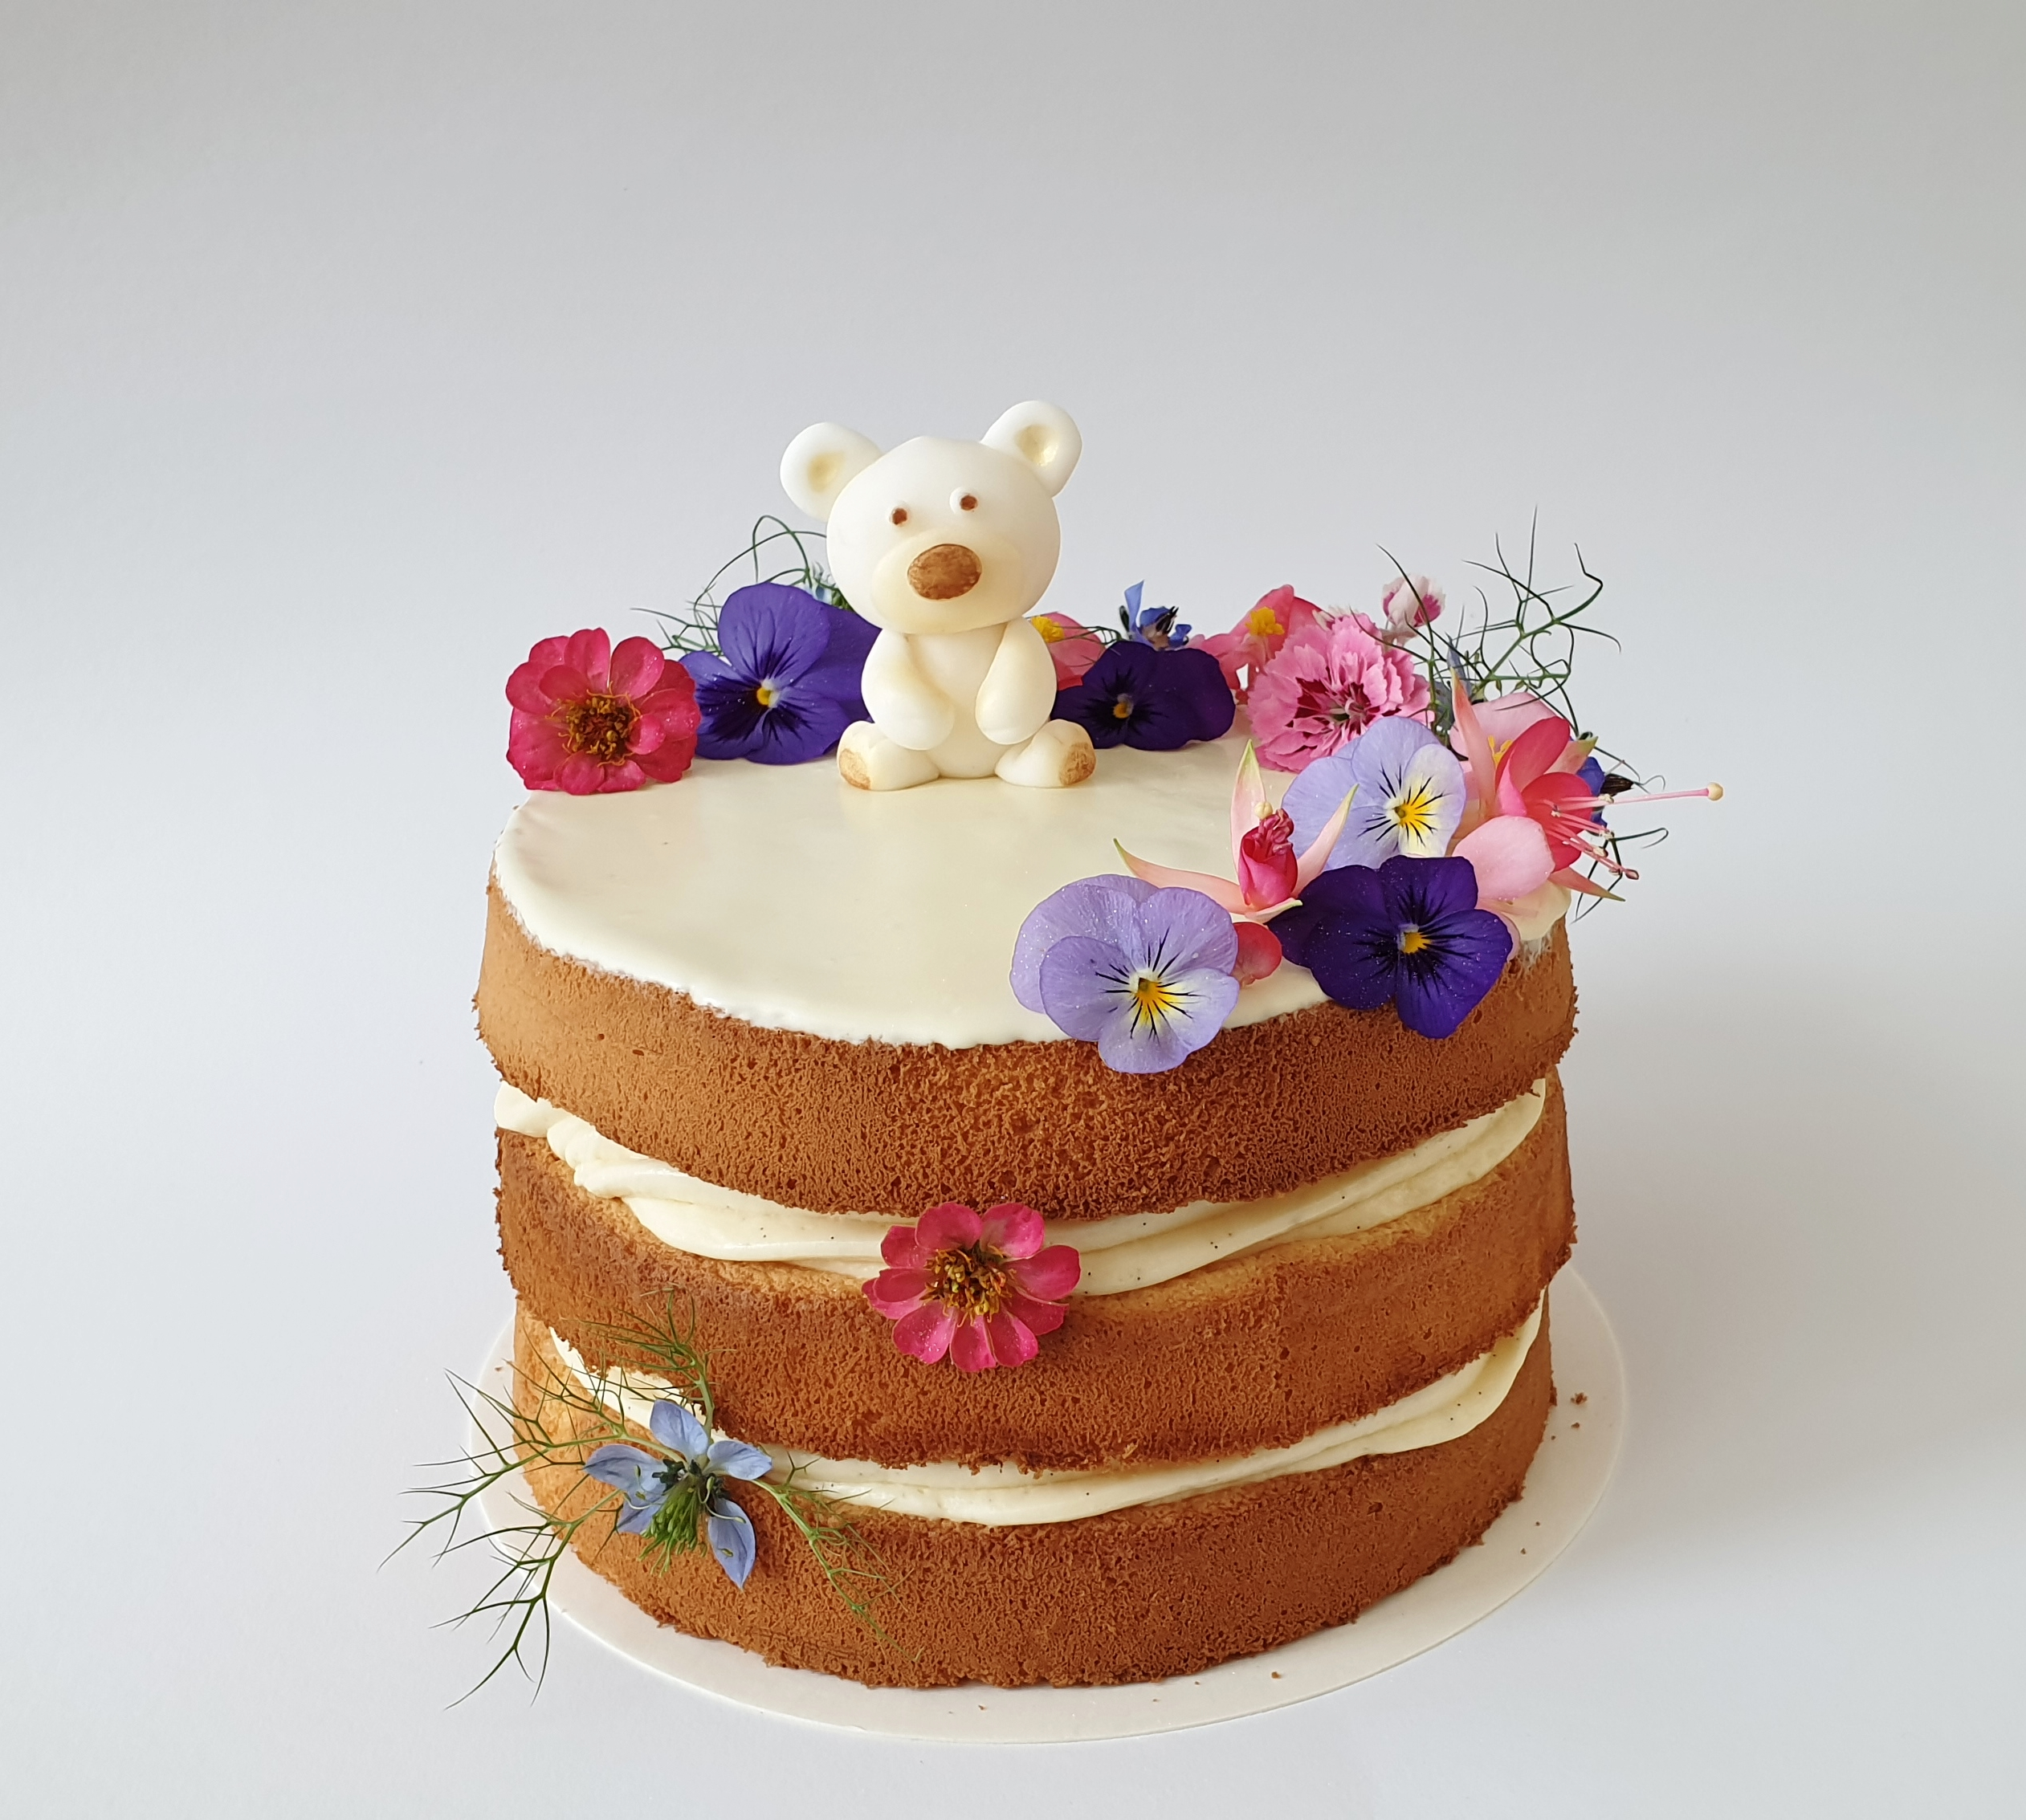 naked cake with edible flowers and fondant teddy bear